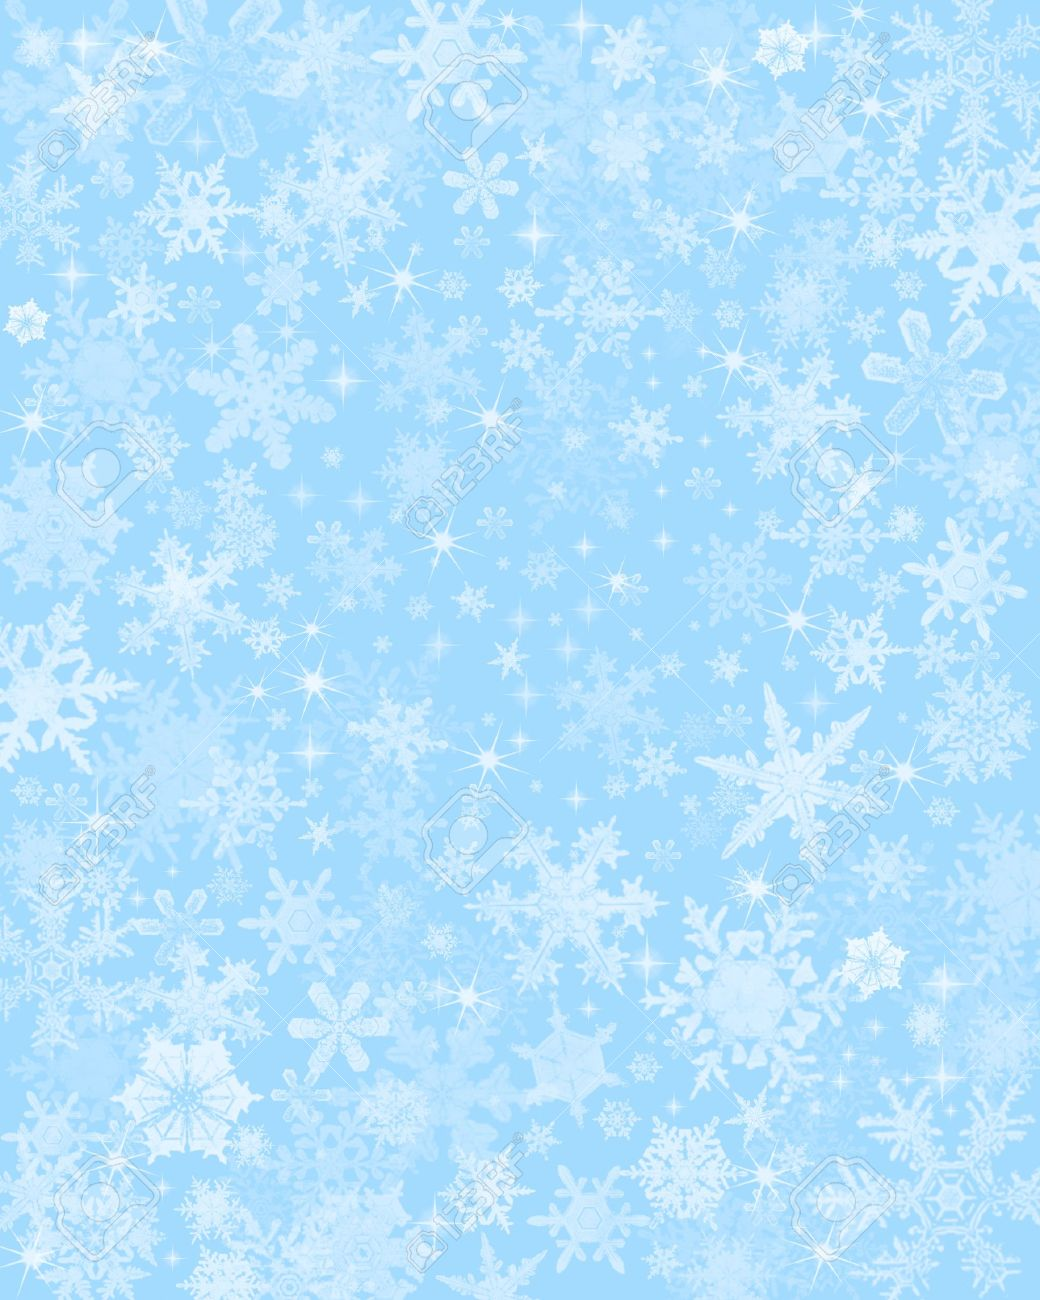 snow flakes on a light blue background stock photo 10358701